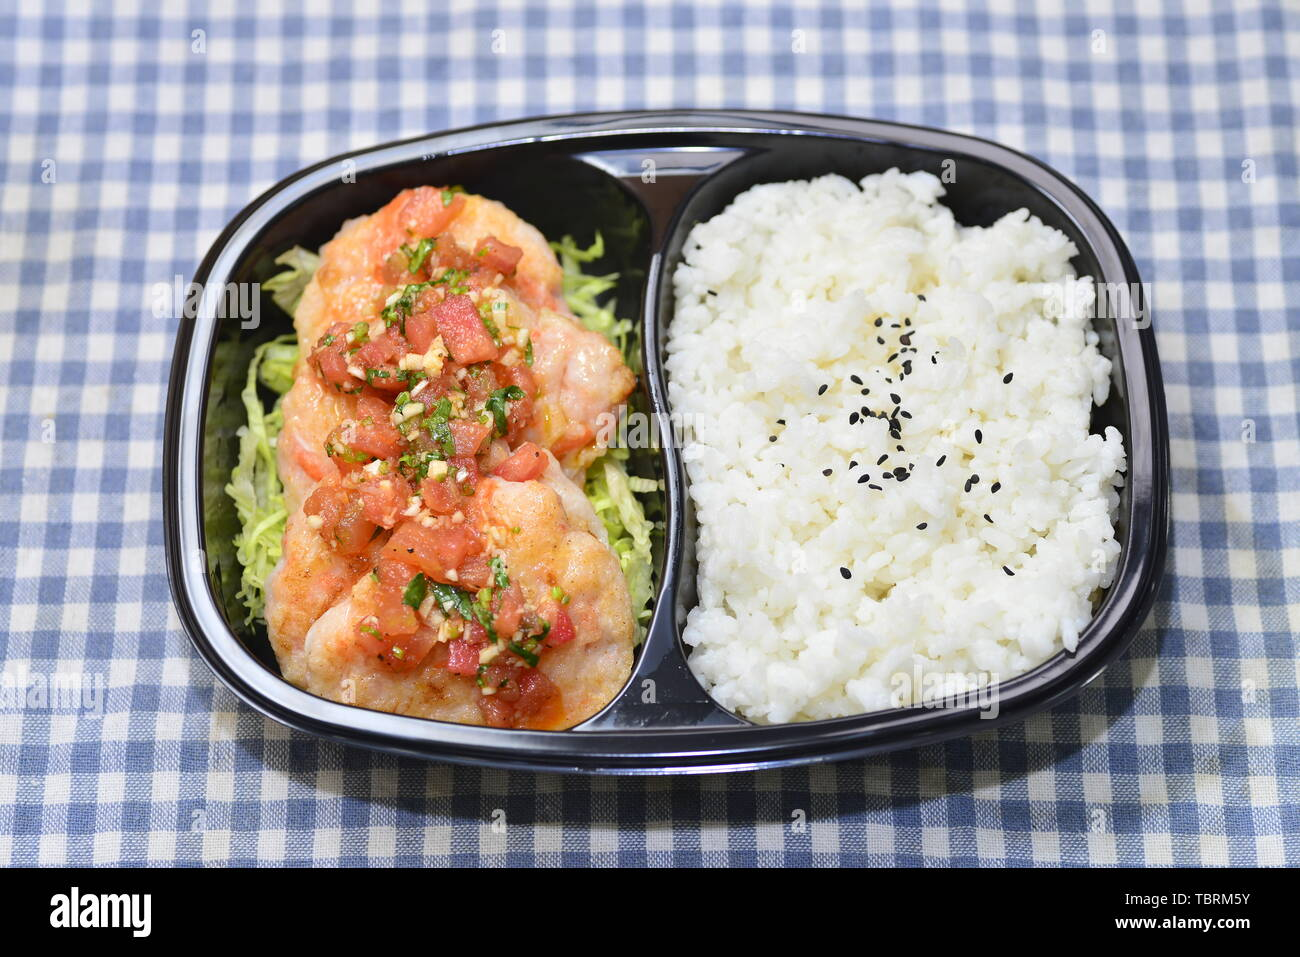 Airplane food, high-speed rail food, fast food, high-end boxed lunch. Stock Photo